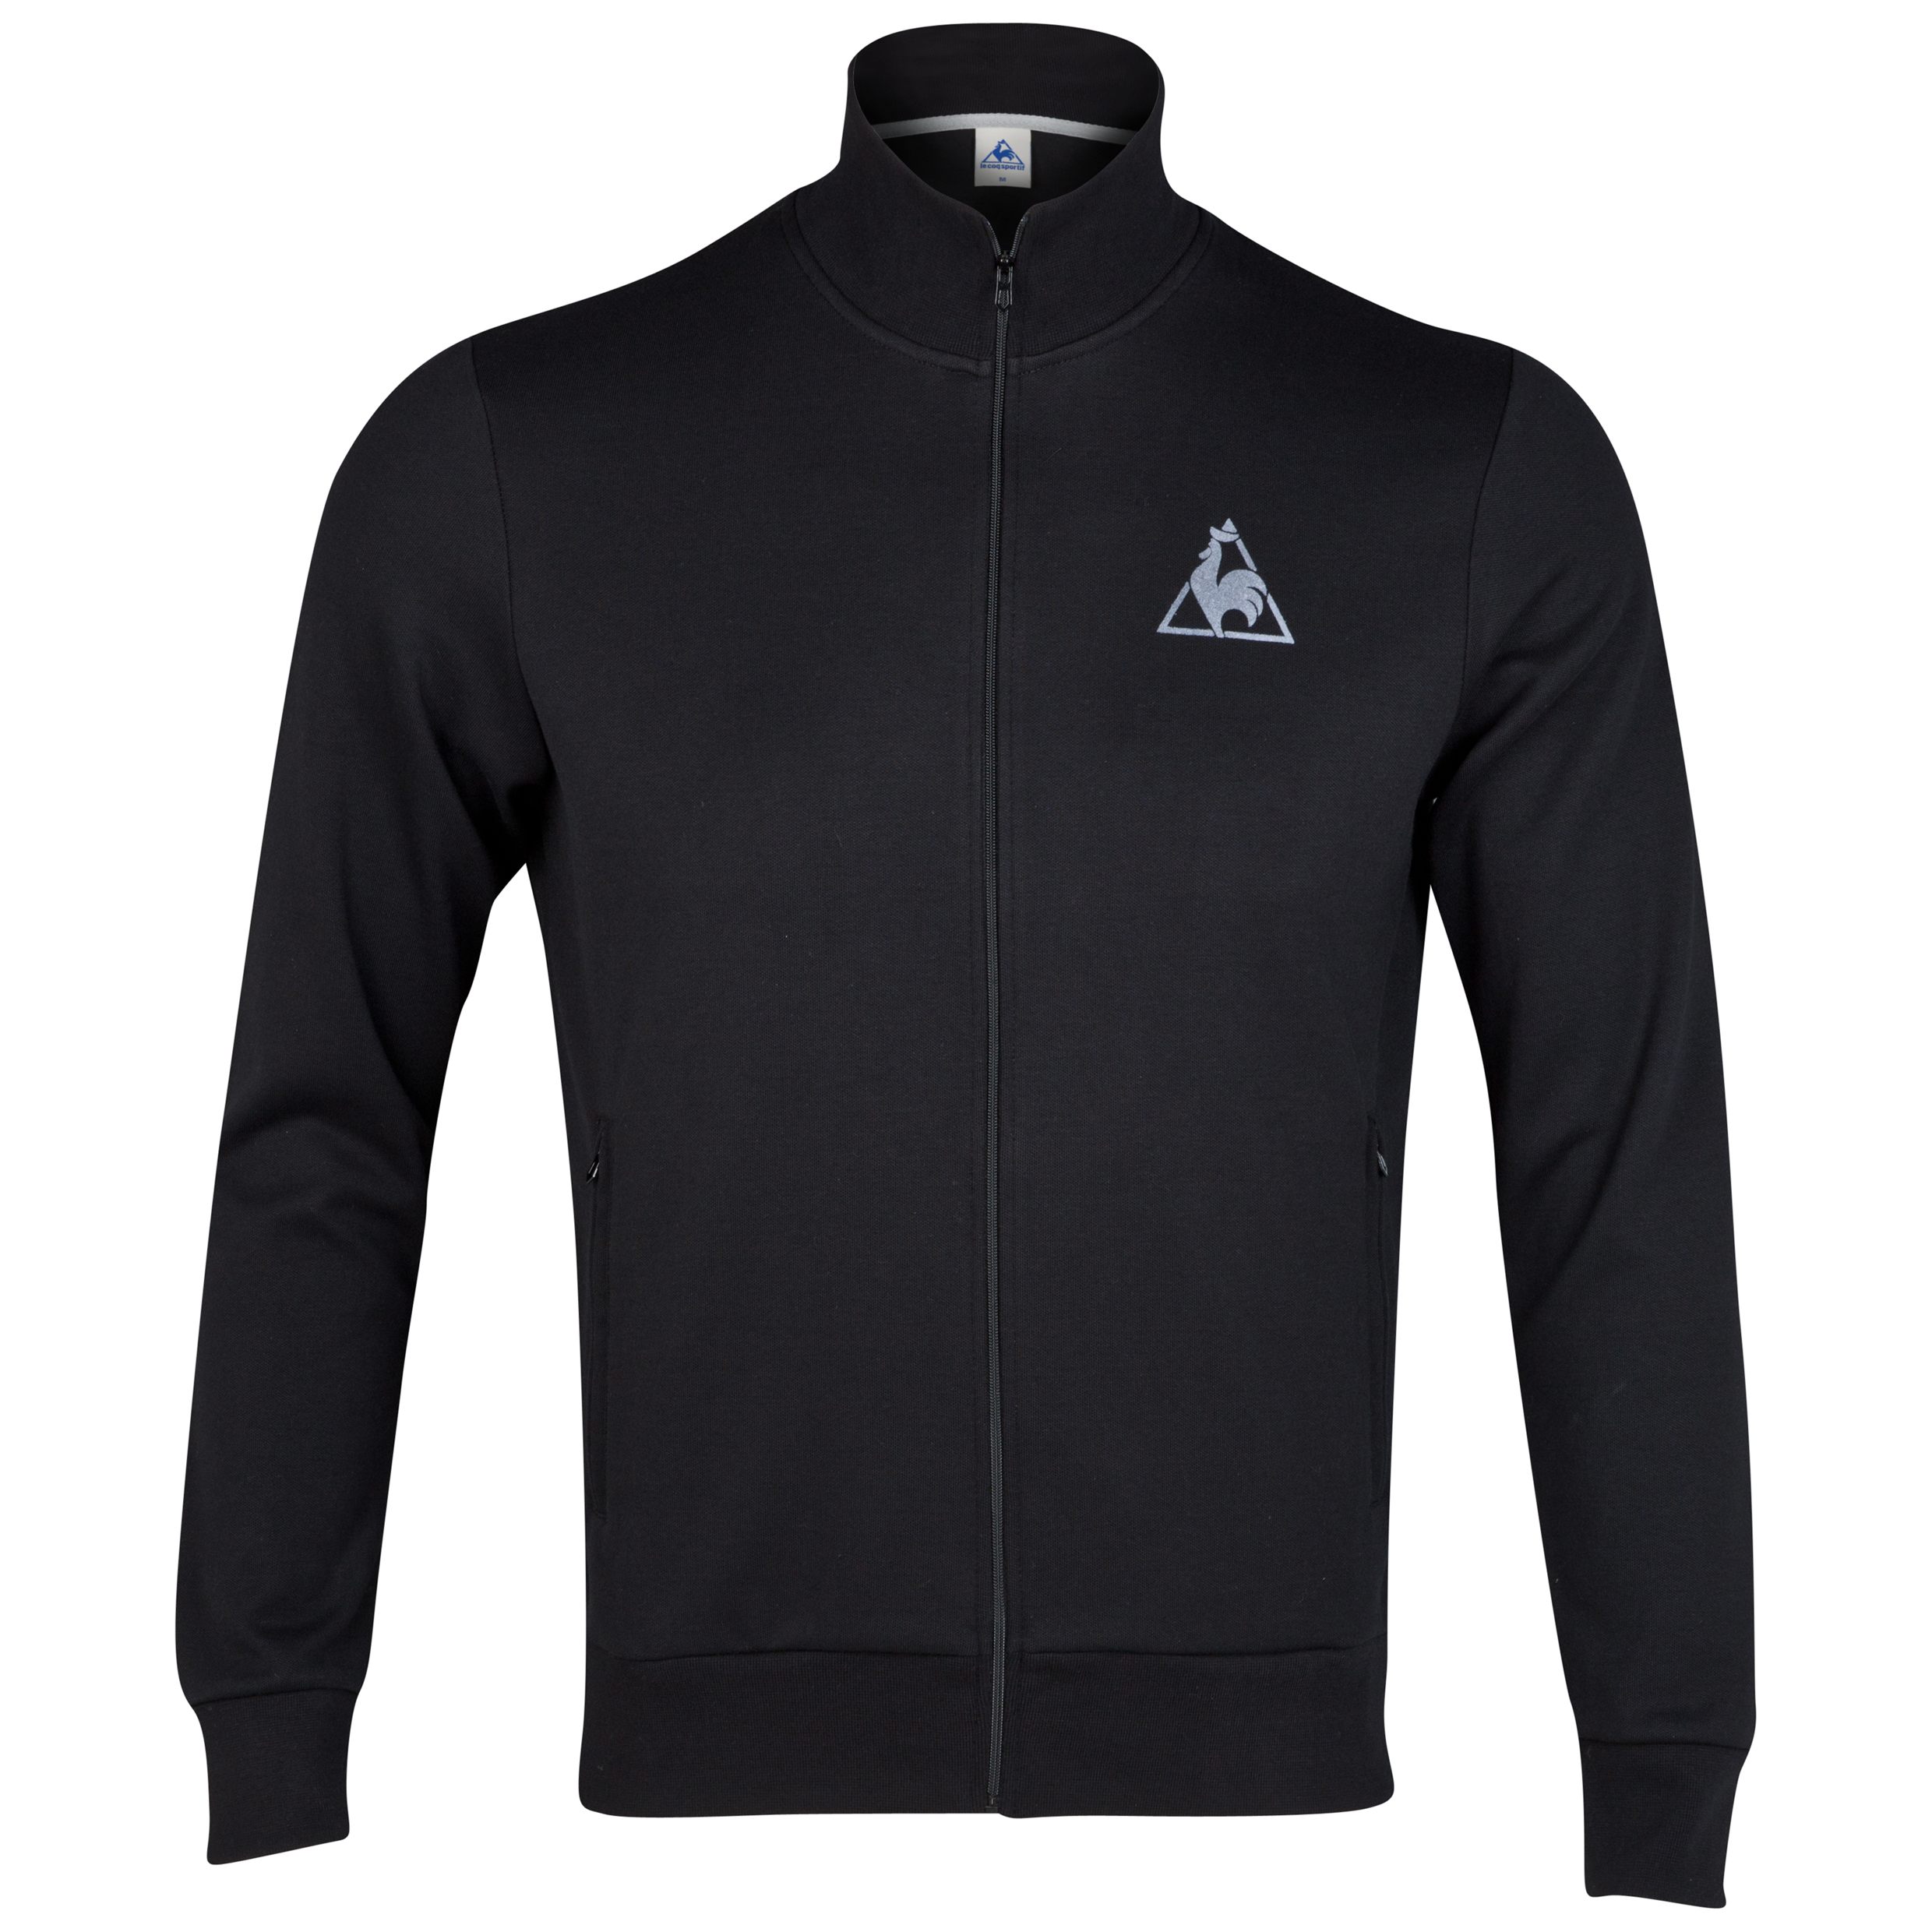 Le Coq Sportif Chronic Track Jacket - Black